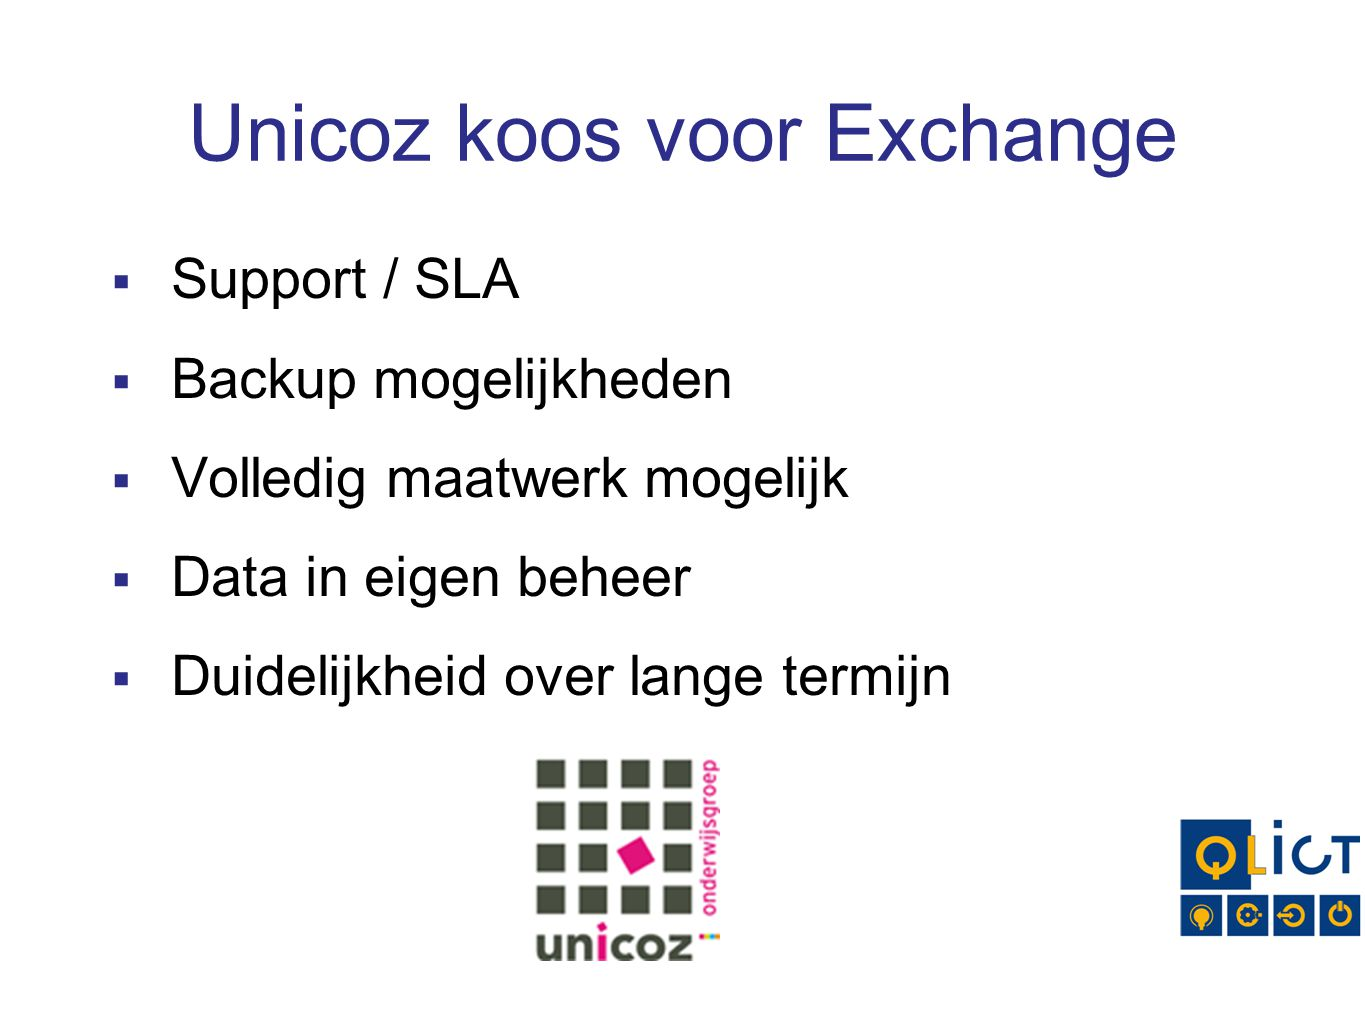 Unicoz koos voor Exchange